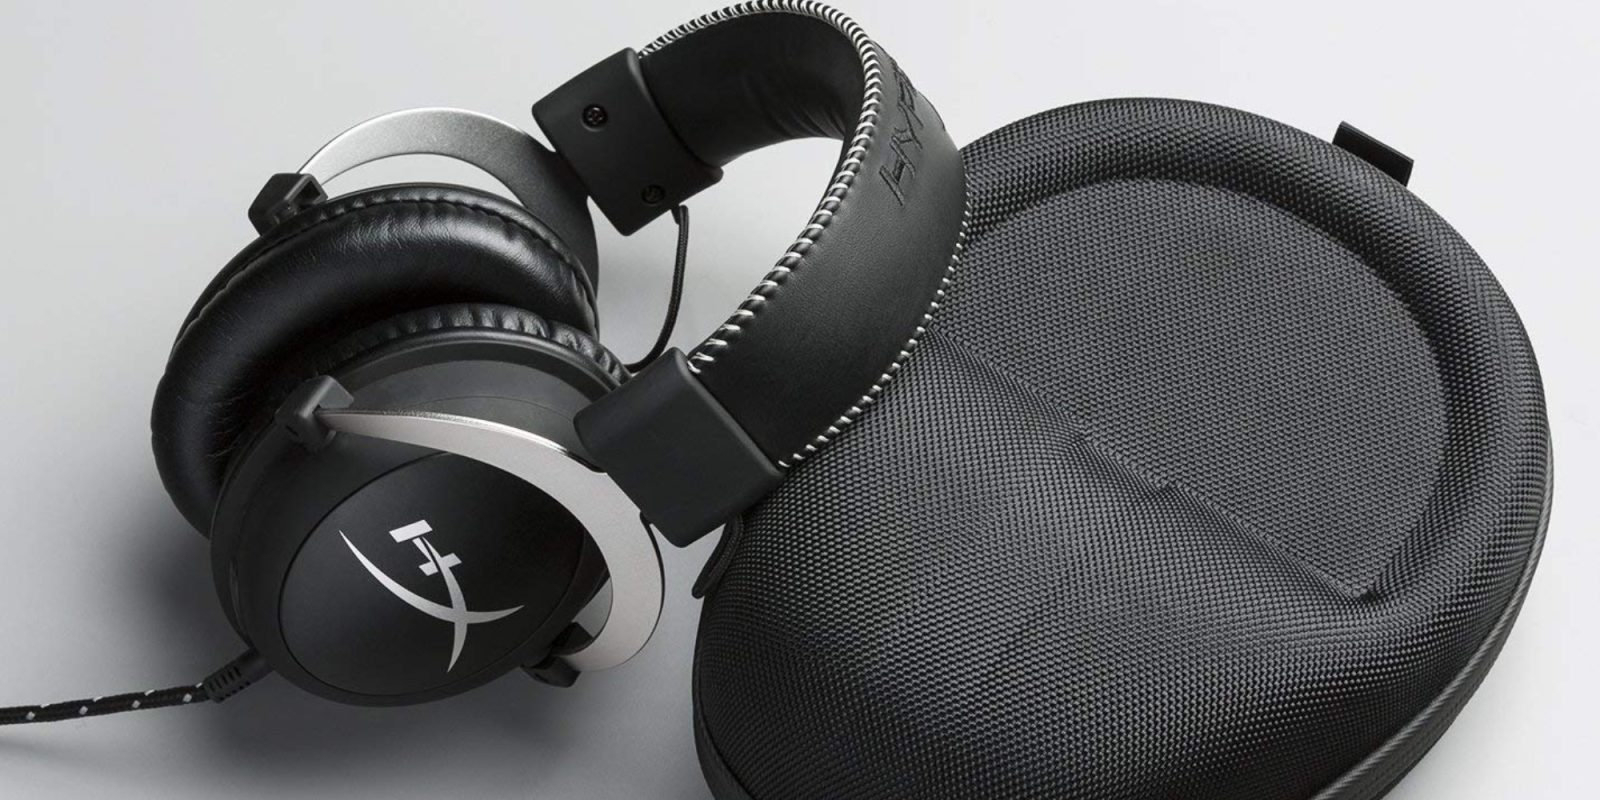 HyperX's Cloud Pro Gaming Headset returns to Amazon low at $50 ($40 off), more